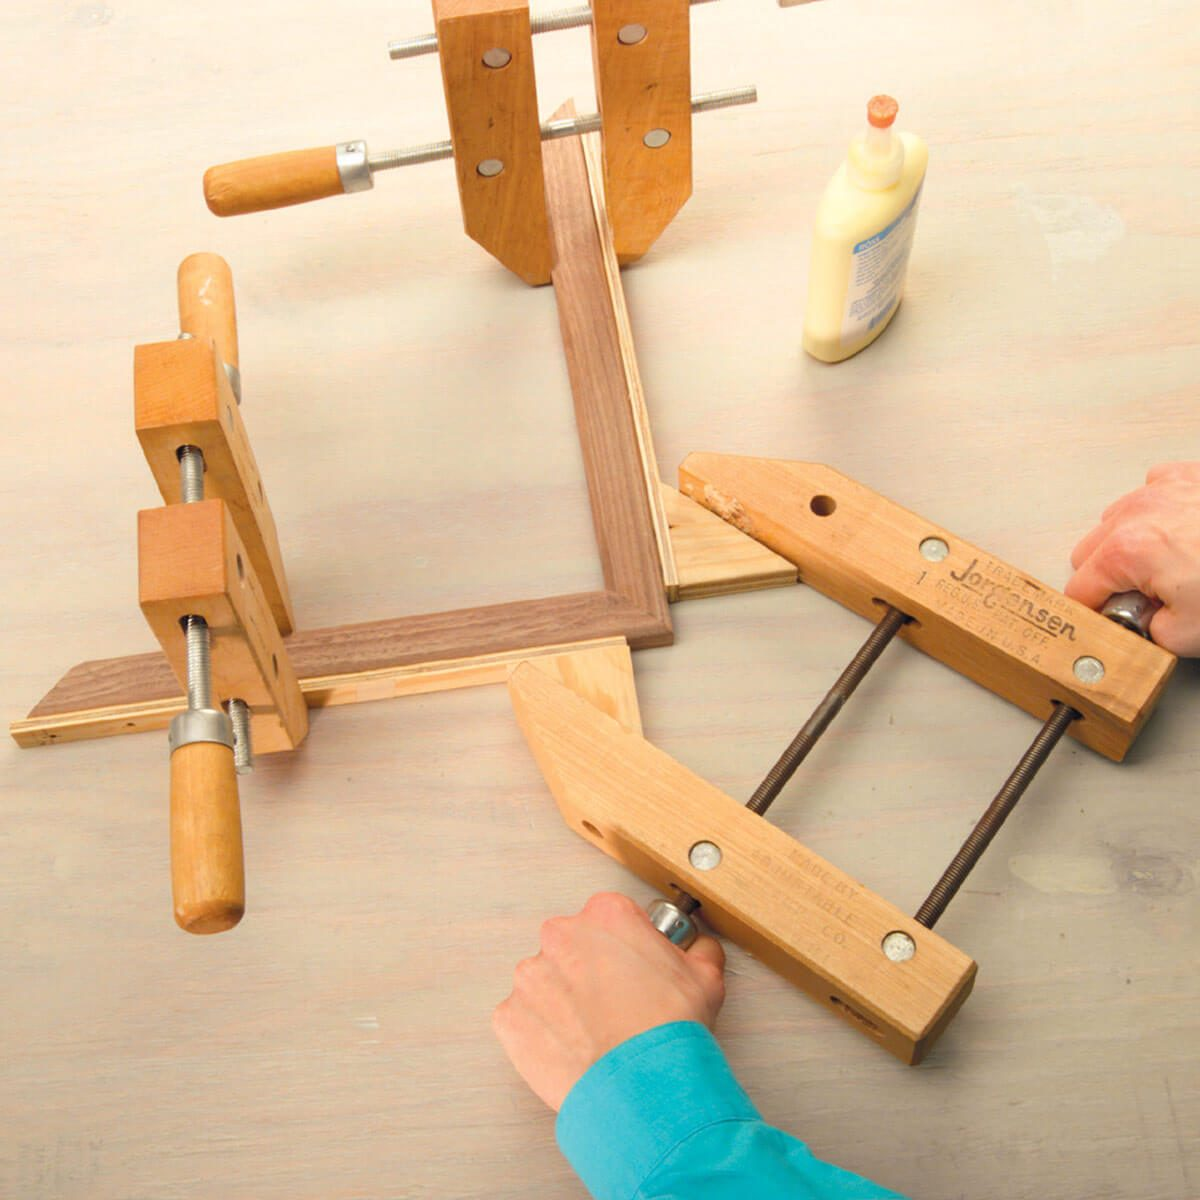 28 secret clamping tricks from woodworkers | the family handyman